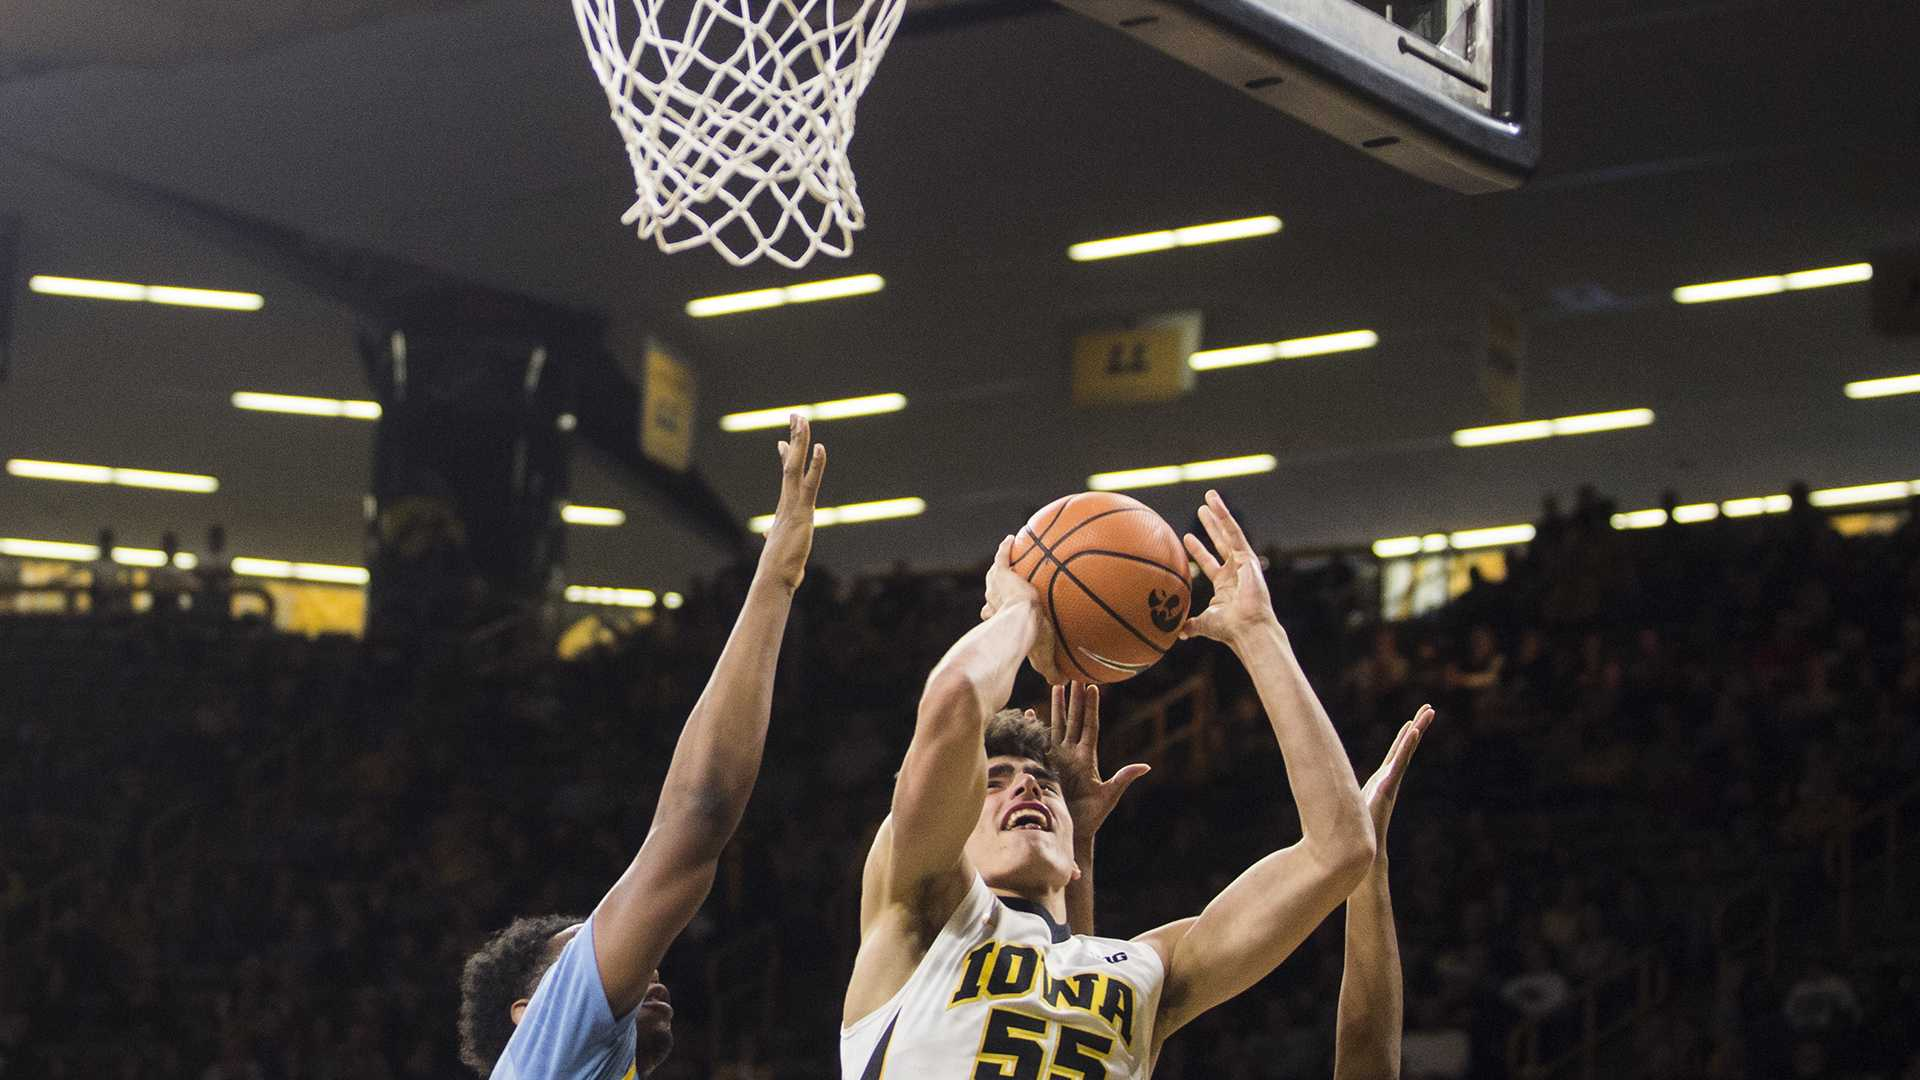 Iowa's Luka Garza (55) drives the ball for a layup during the game between Iowa and Southern at Carver-Hawkeye Arena on Sunday, Dec. 10. (Ben Allan Smith/The Daily Iowan)